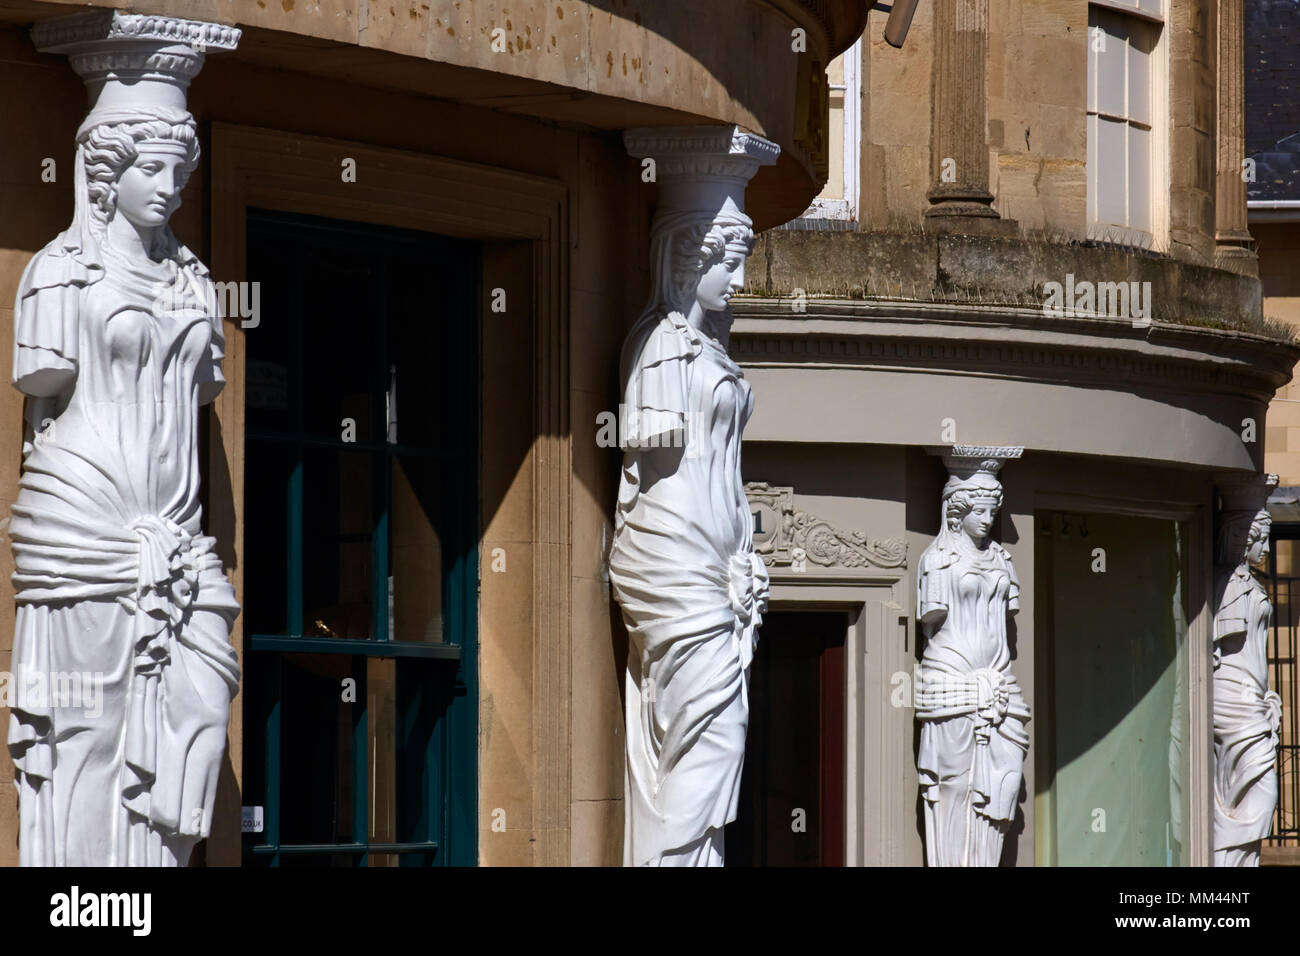 Caryatids architectural feature on shop fronts in the Montpellier district of Cheltenham, Gloucestershire. - Stock Image